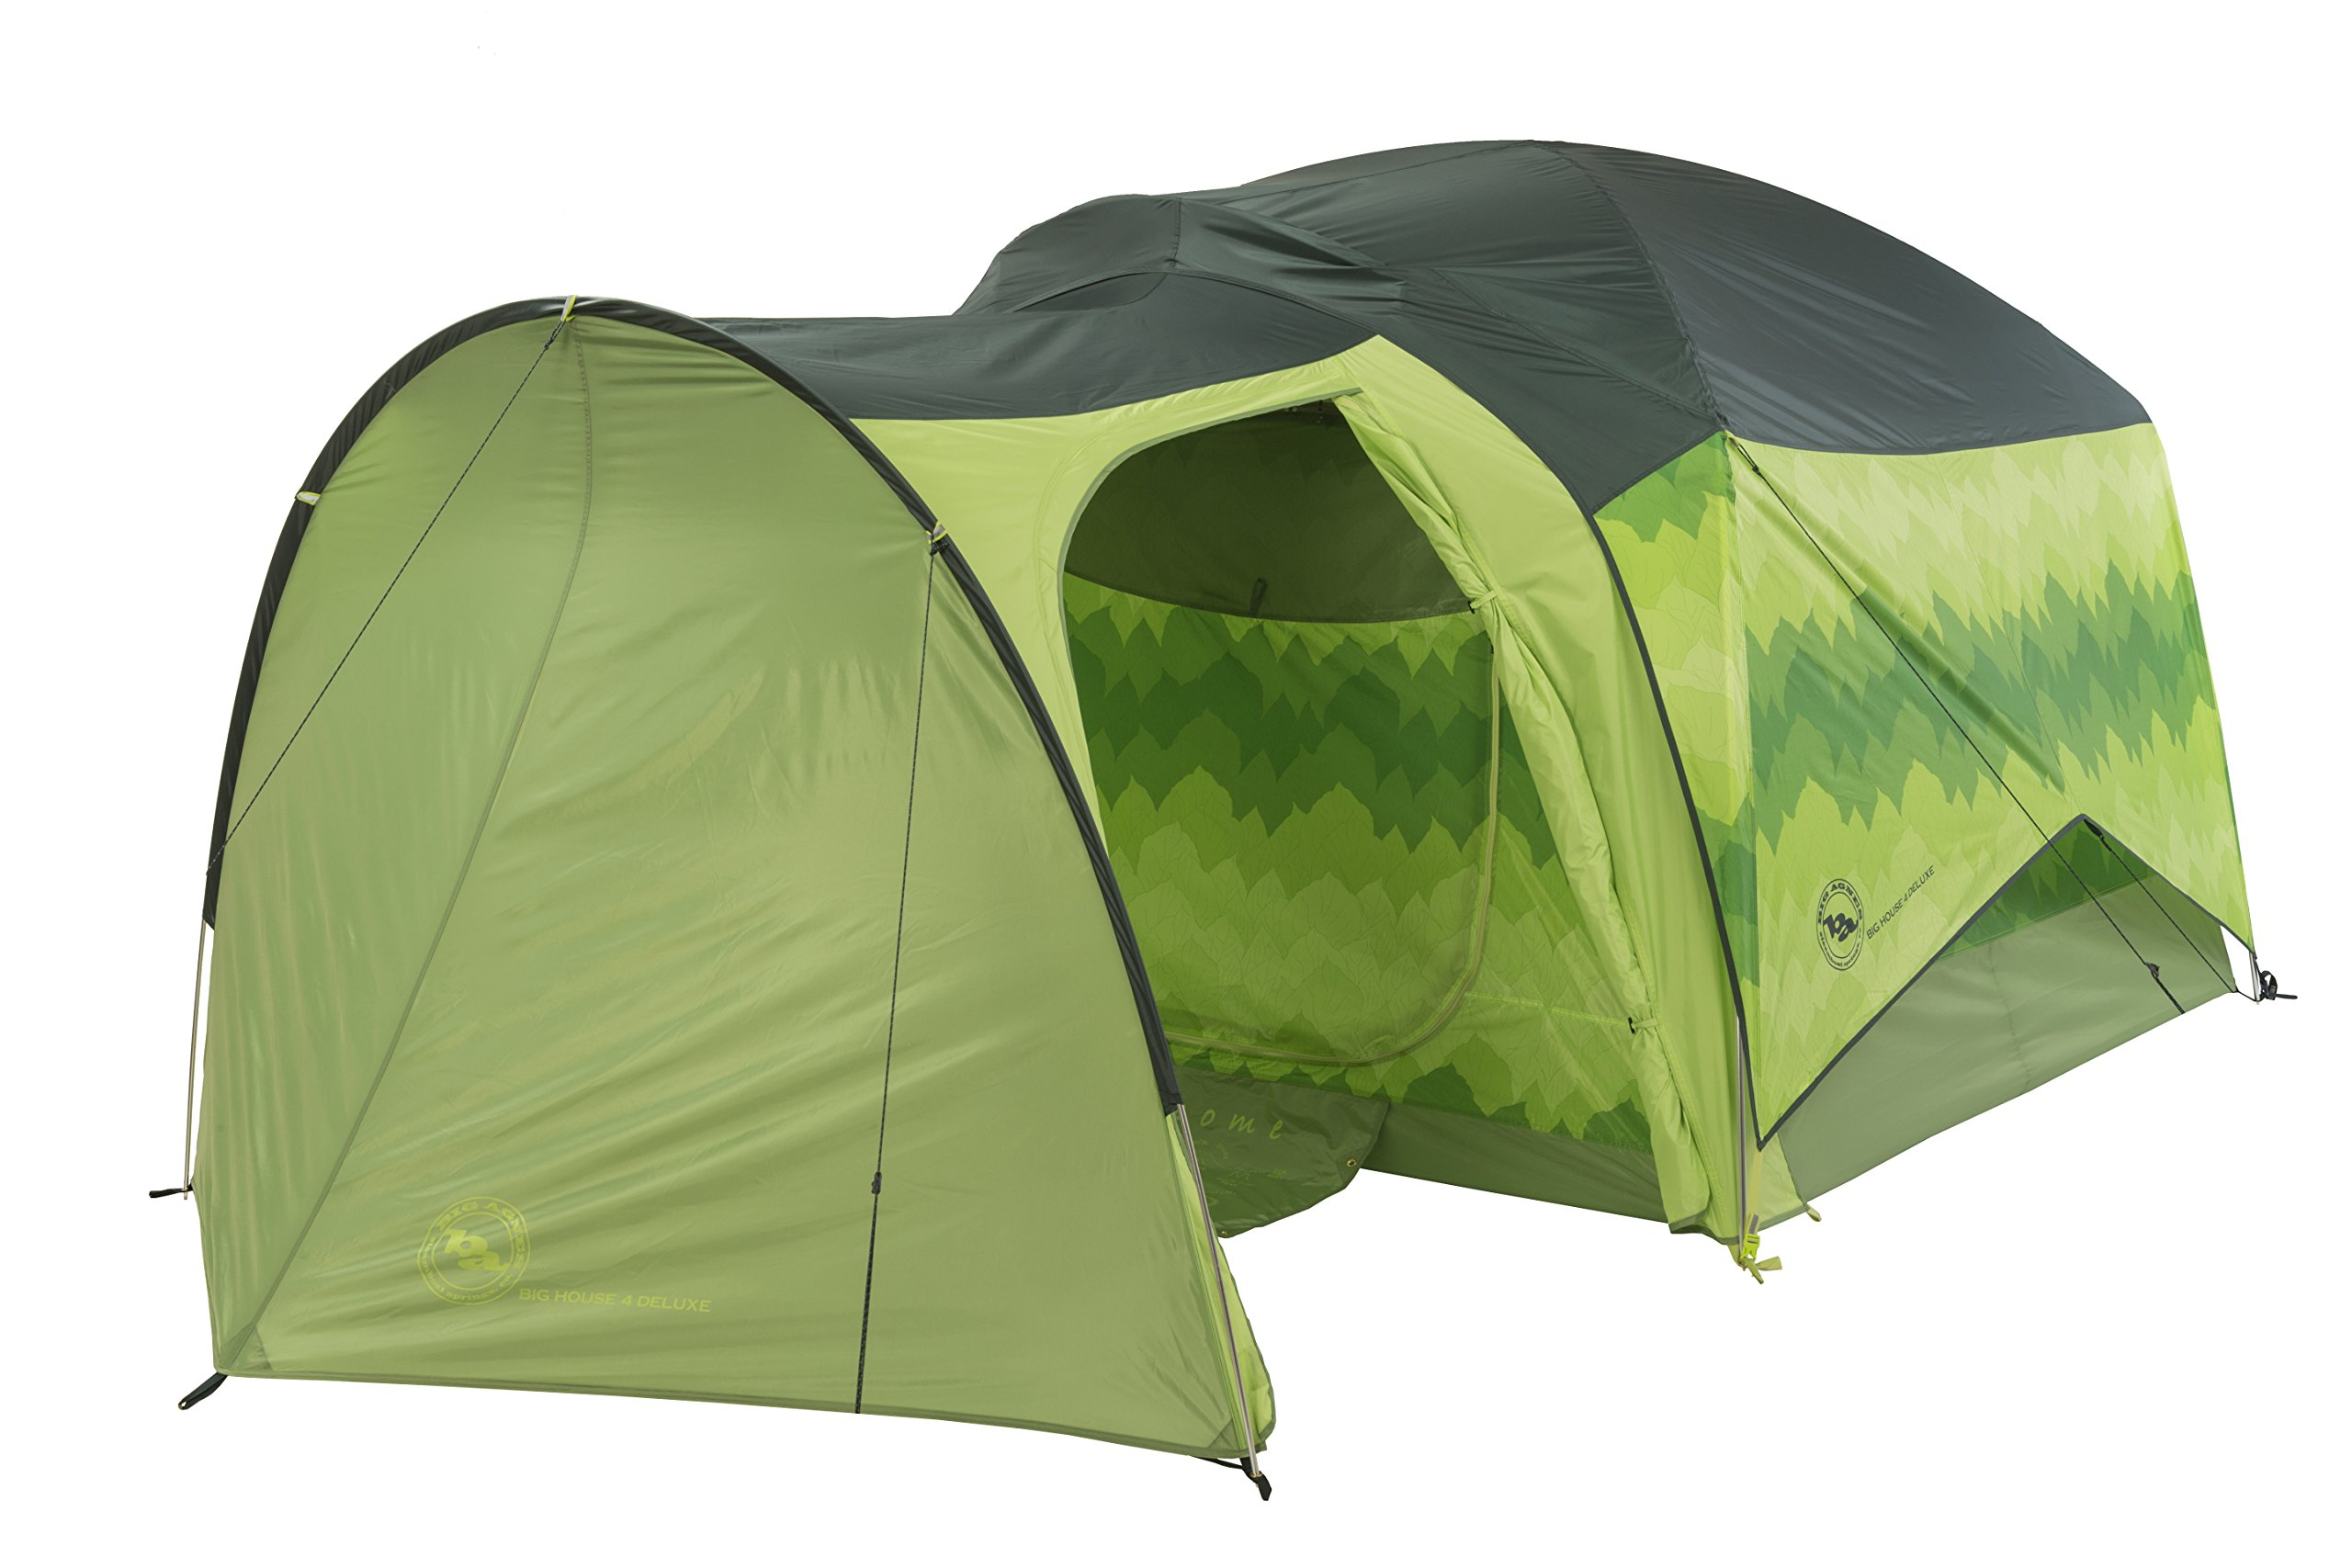 Big Agnes Big House Deluxe Accessory Vestibule, Green, 6 Person by Big Agnes